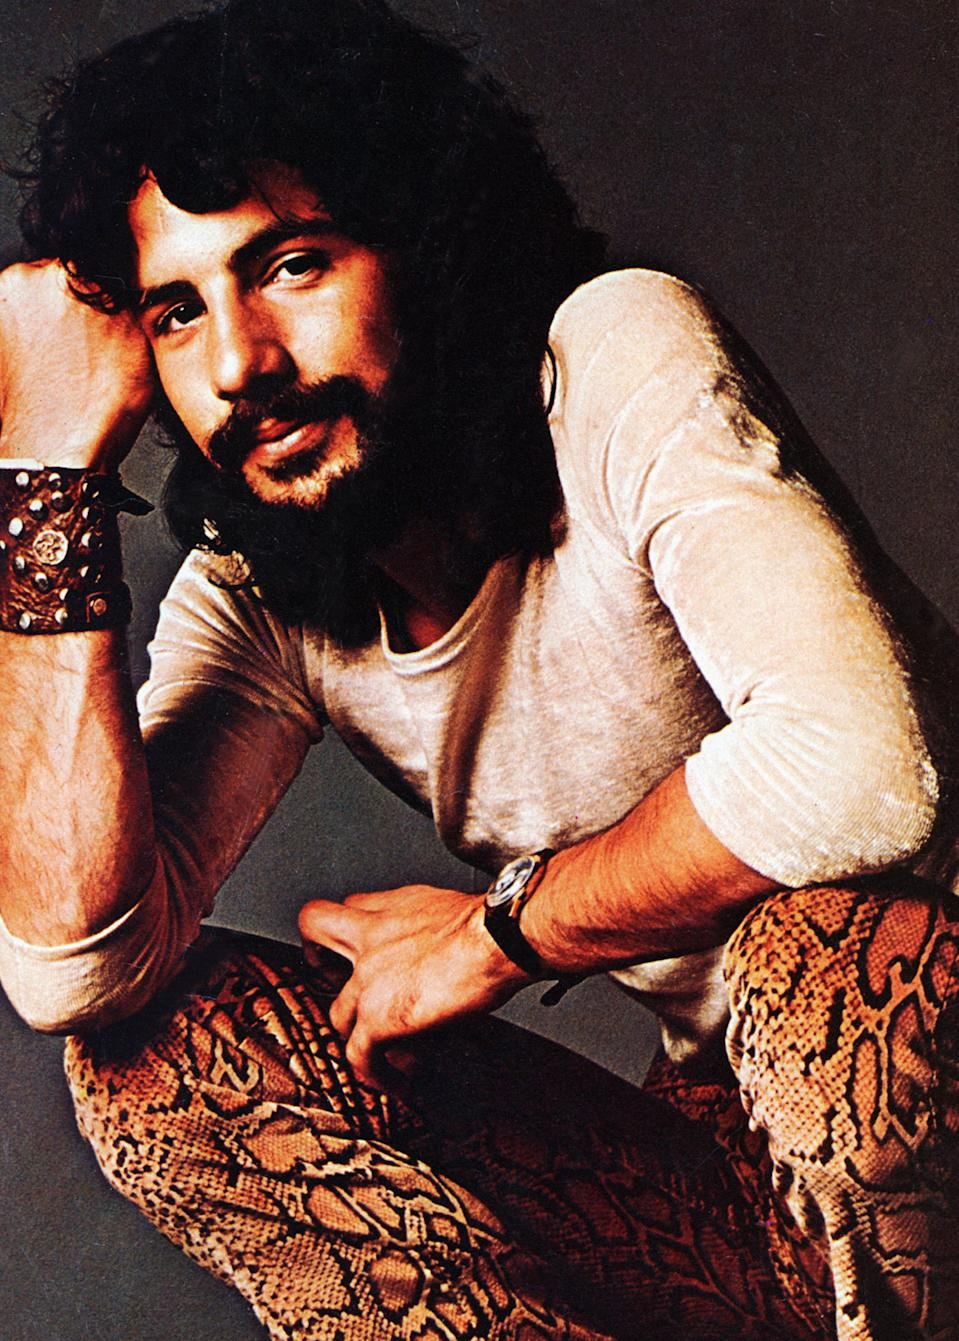 Then going by the stage name Cat Stevens, the singer turned to Islam following a near-death experience. (Photo: Jim McCrary/Redferns)